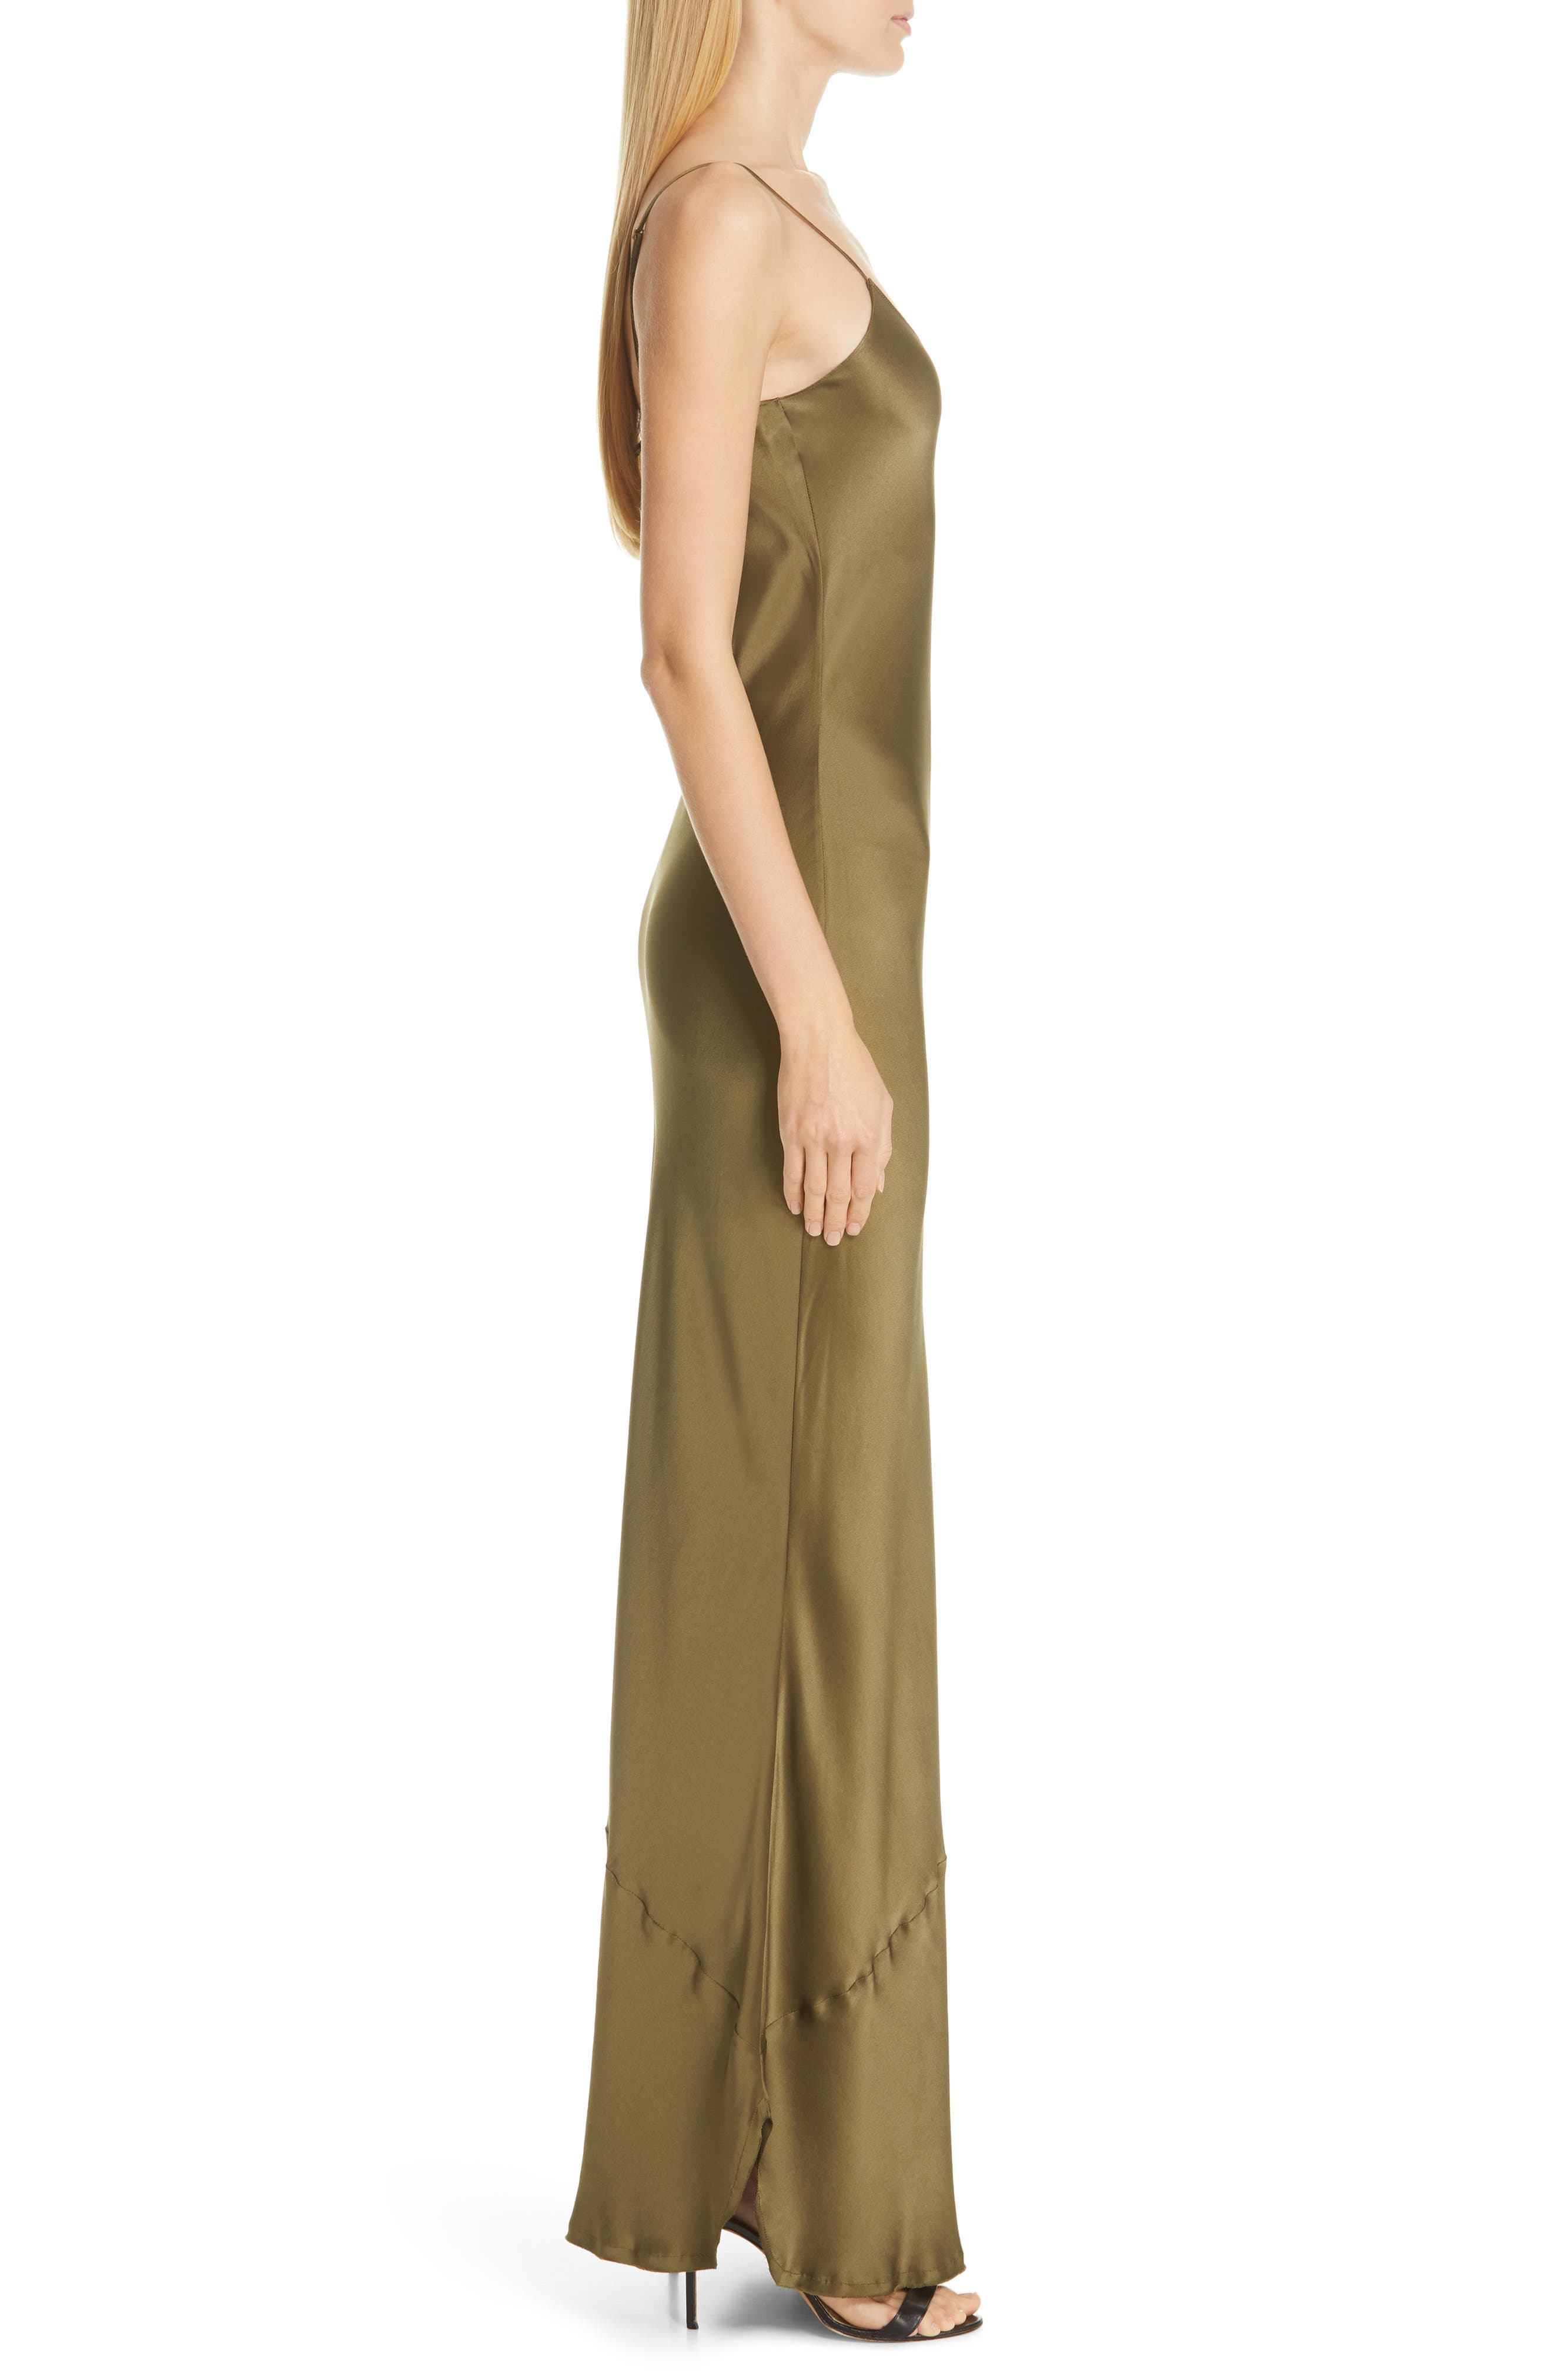 NILI LOTAN, Silk Camisole Gown, Alternate thumbnail 4, color, OLIVE